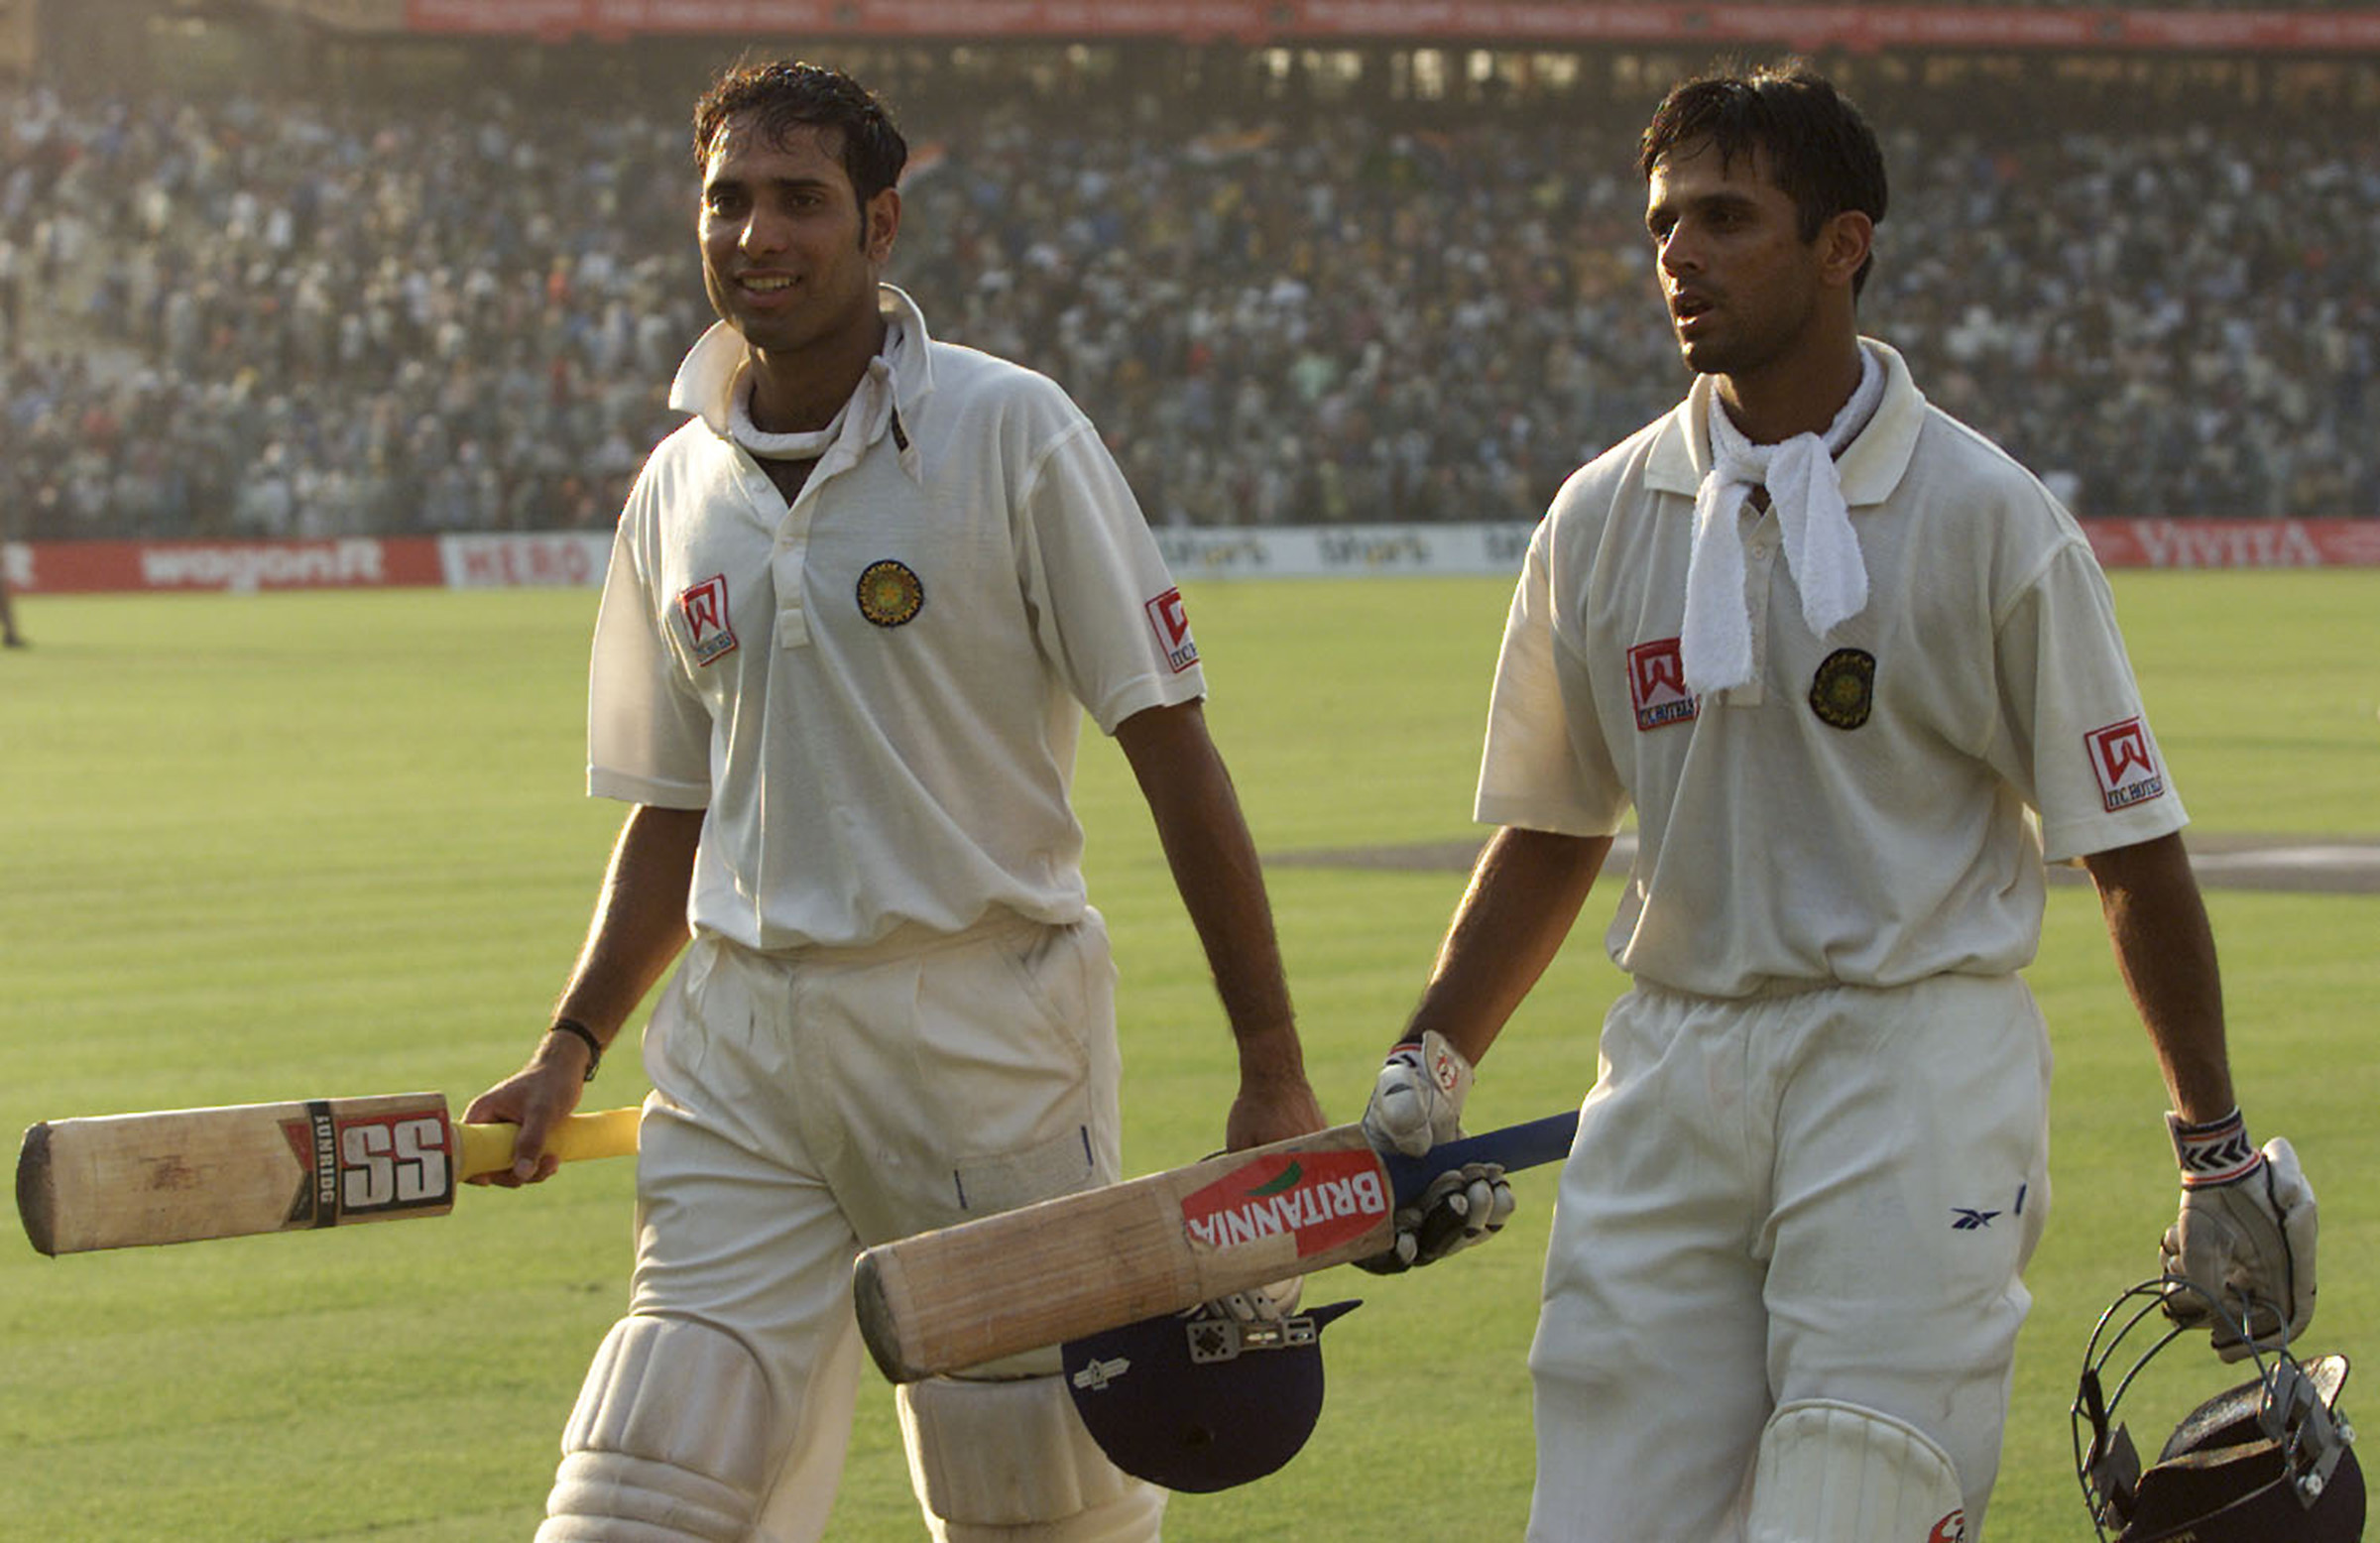 Laxman and Dravid after batting through the entire day // Getty